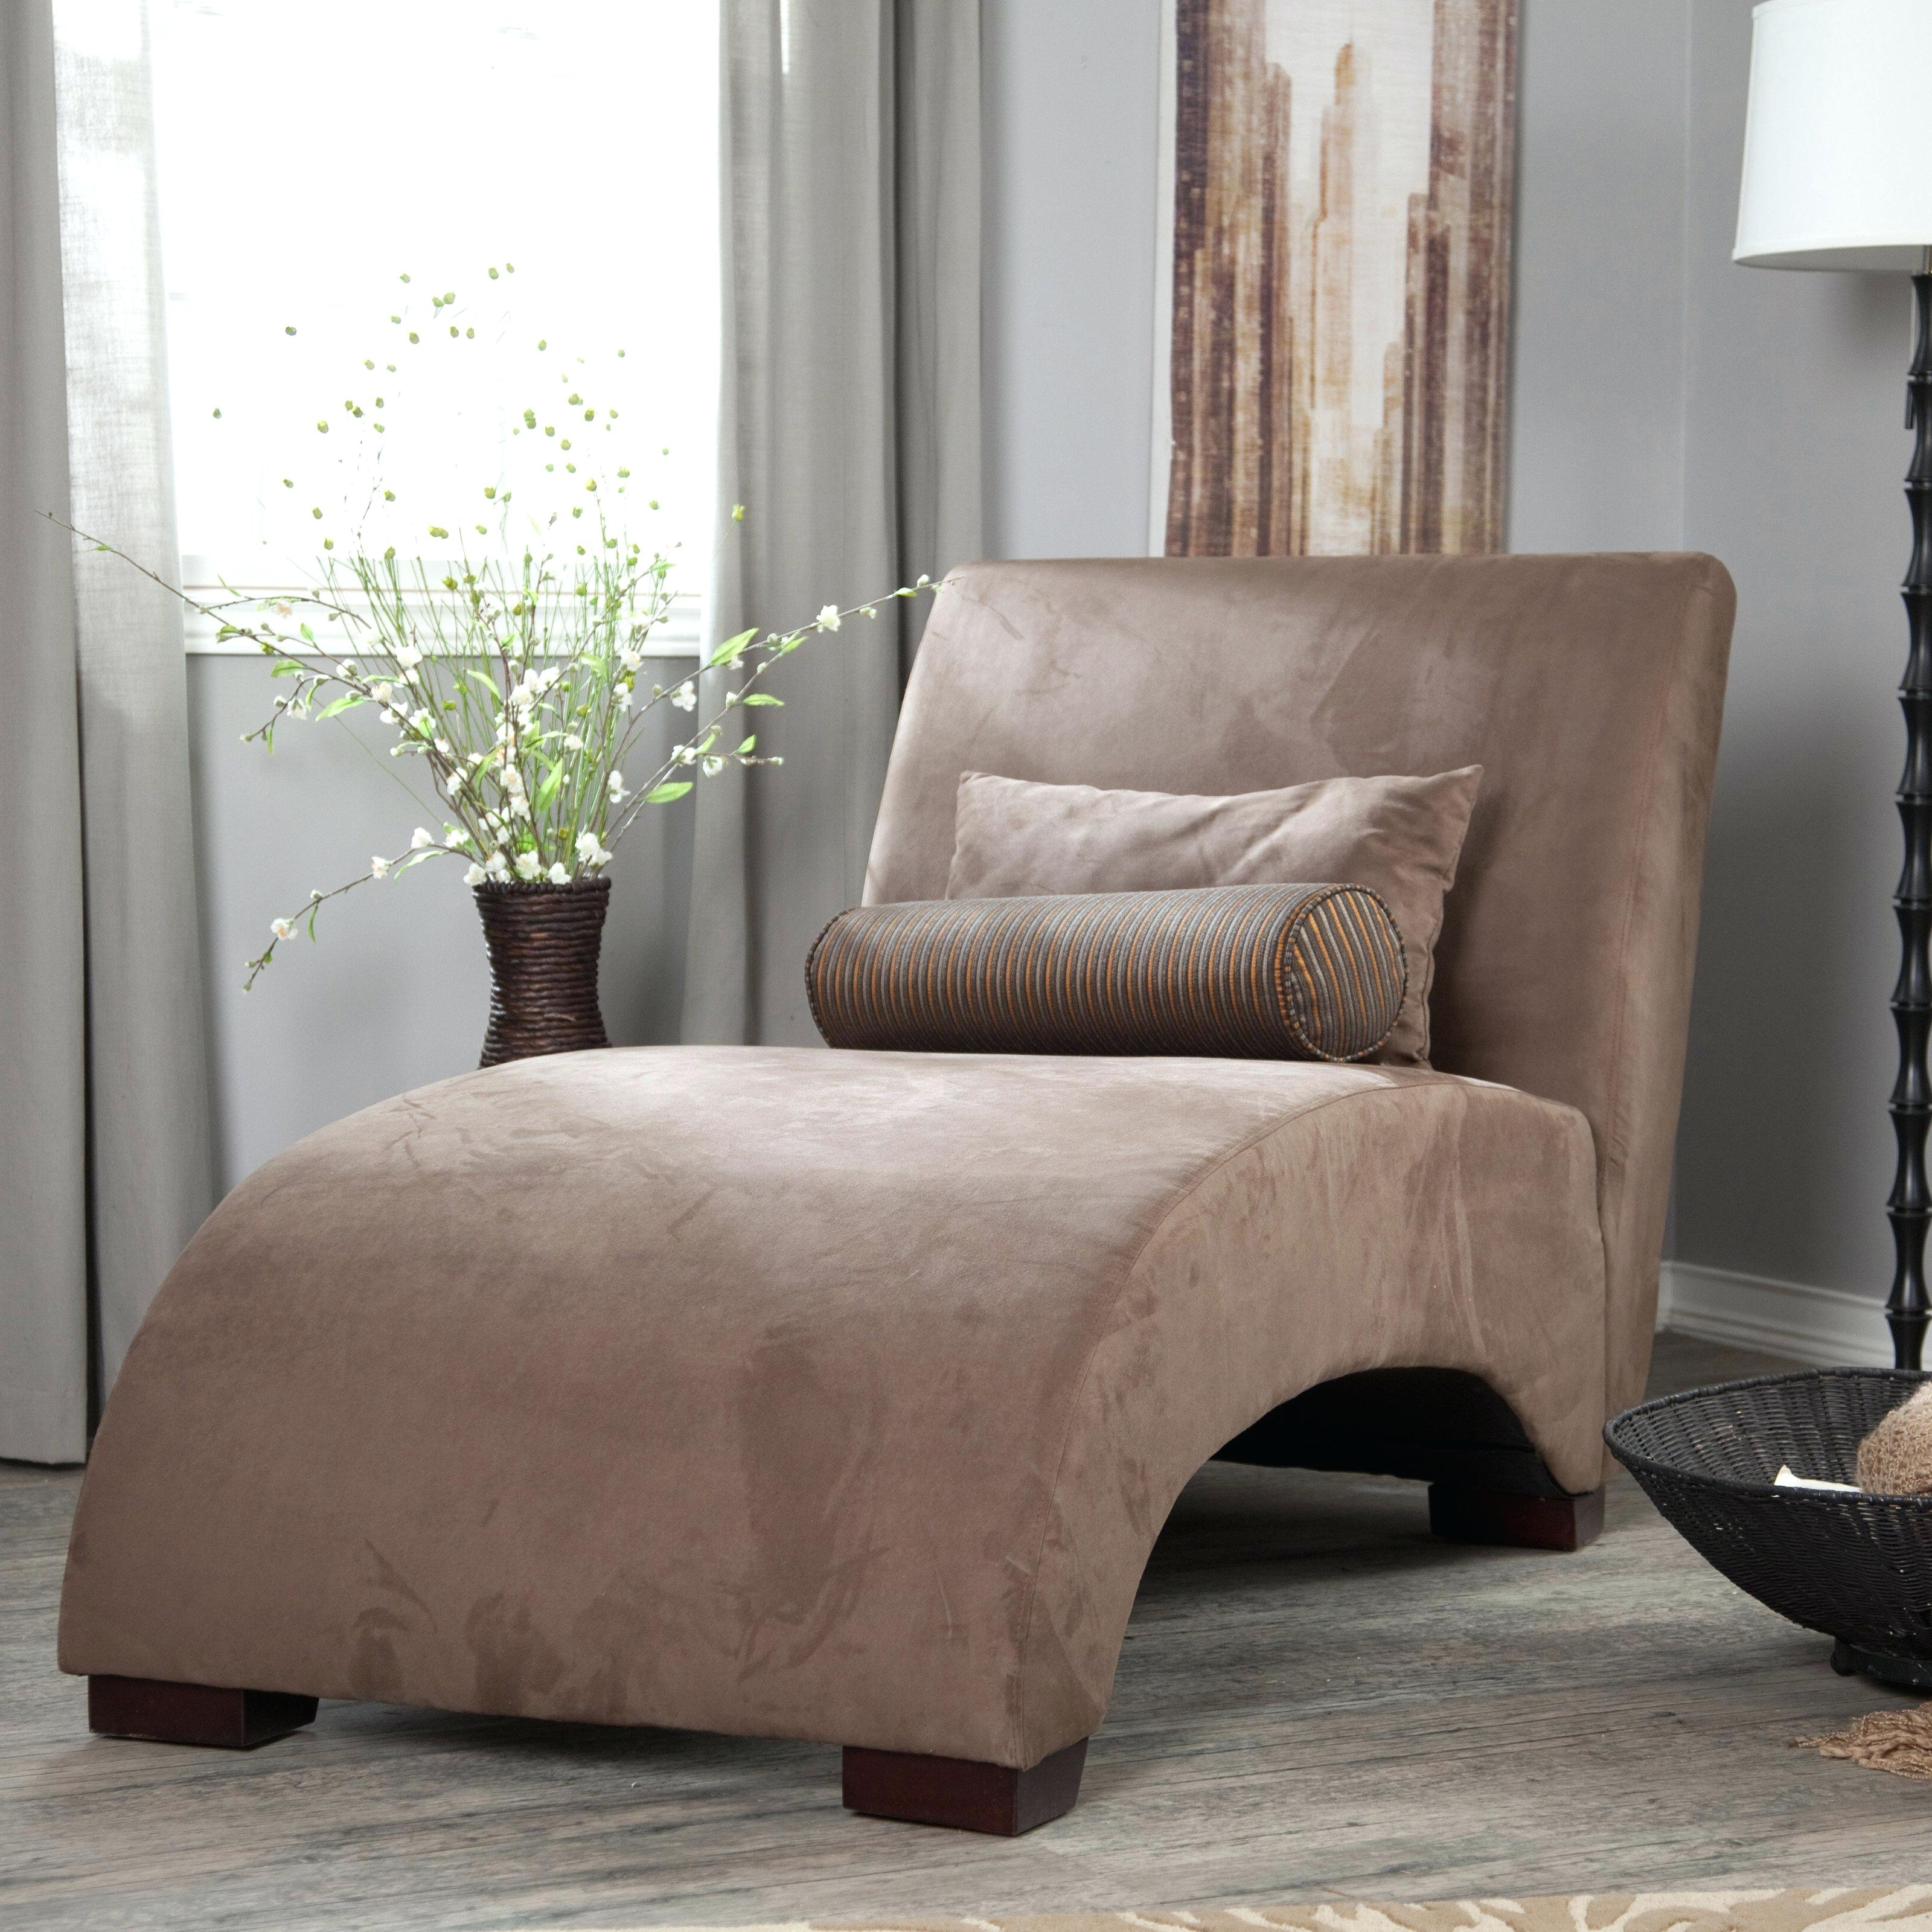 Armless Lounge Chair Slipcovers • Lounge Chairs Ideas Within Widely Used Indoor Chaise Lounge Slipcovers (View 2 of 15)